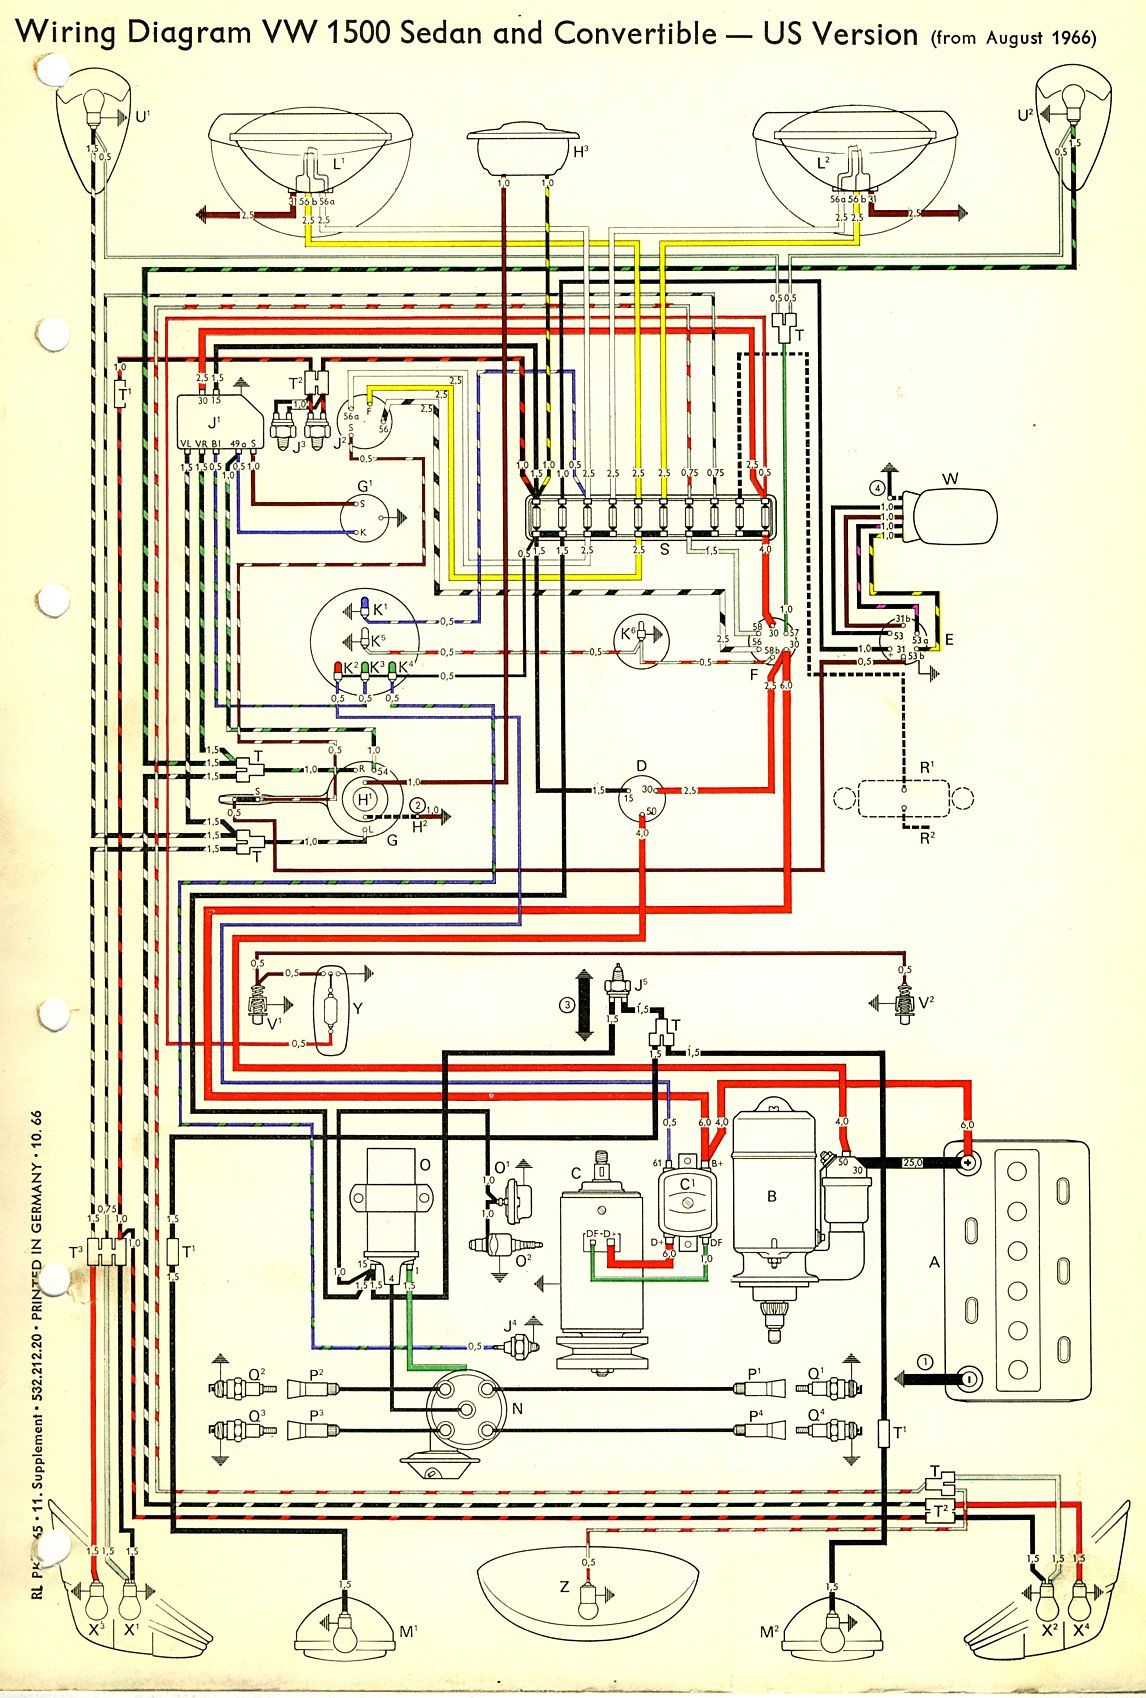 1adf990c0efb617c789fdd21338448b0 1967 beetle wiring diagram (usa) thegoldenbug com best 1967 vw vw bug wiring diagram at soozxer.org